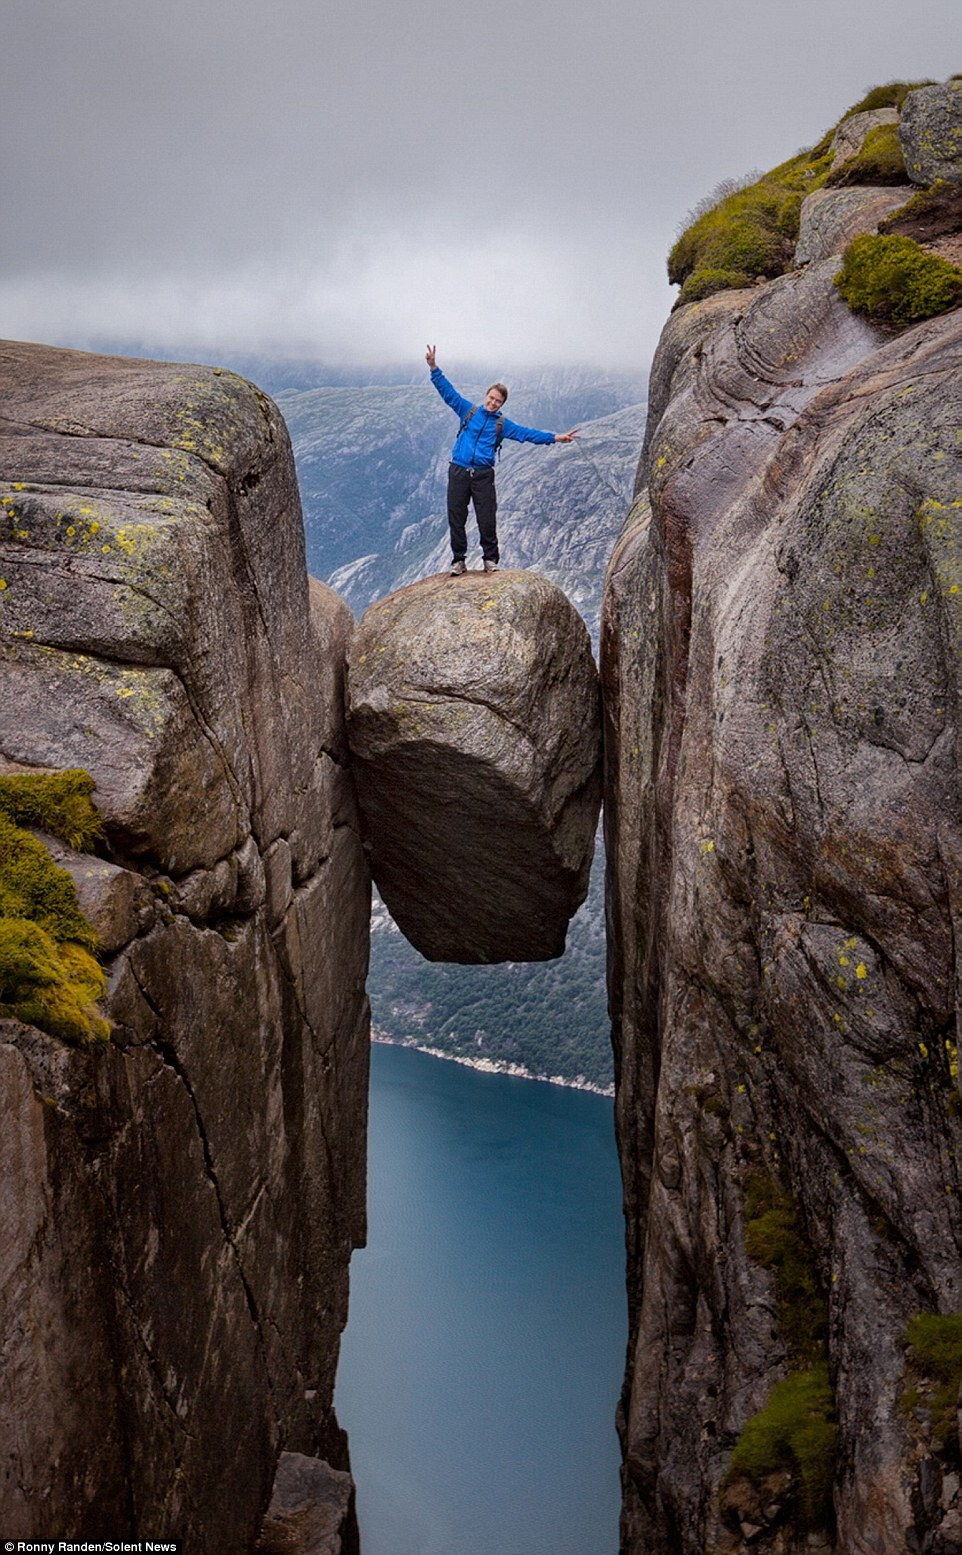 Hiking, rock climbing, Kjeragbolten, death, World's Best Hikes, Norwegian mountains, norway, Travel, Stavanger, Amazing Places on our Planet, Incredible, photography, europe